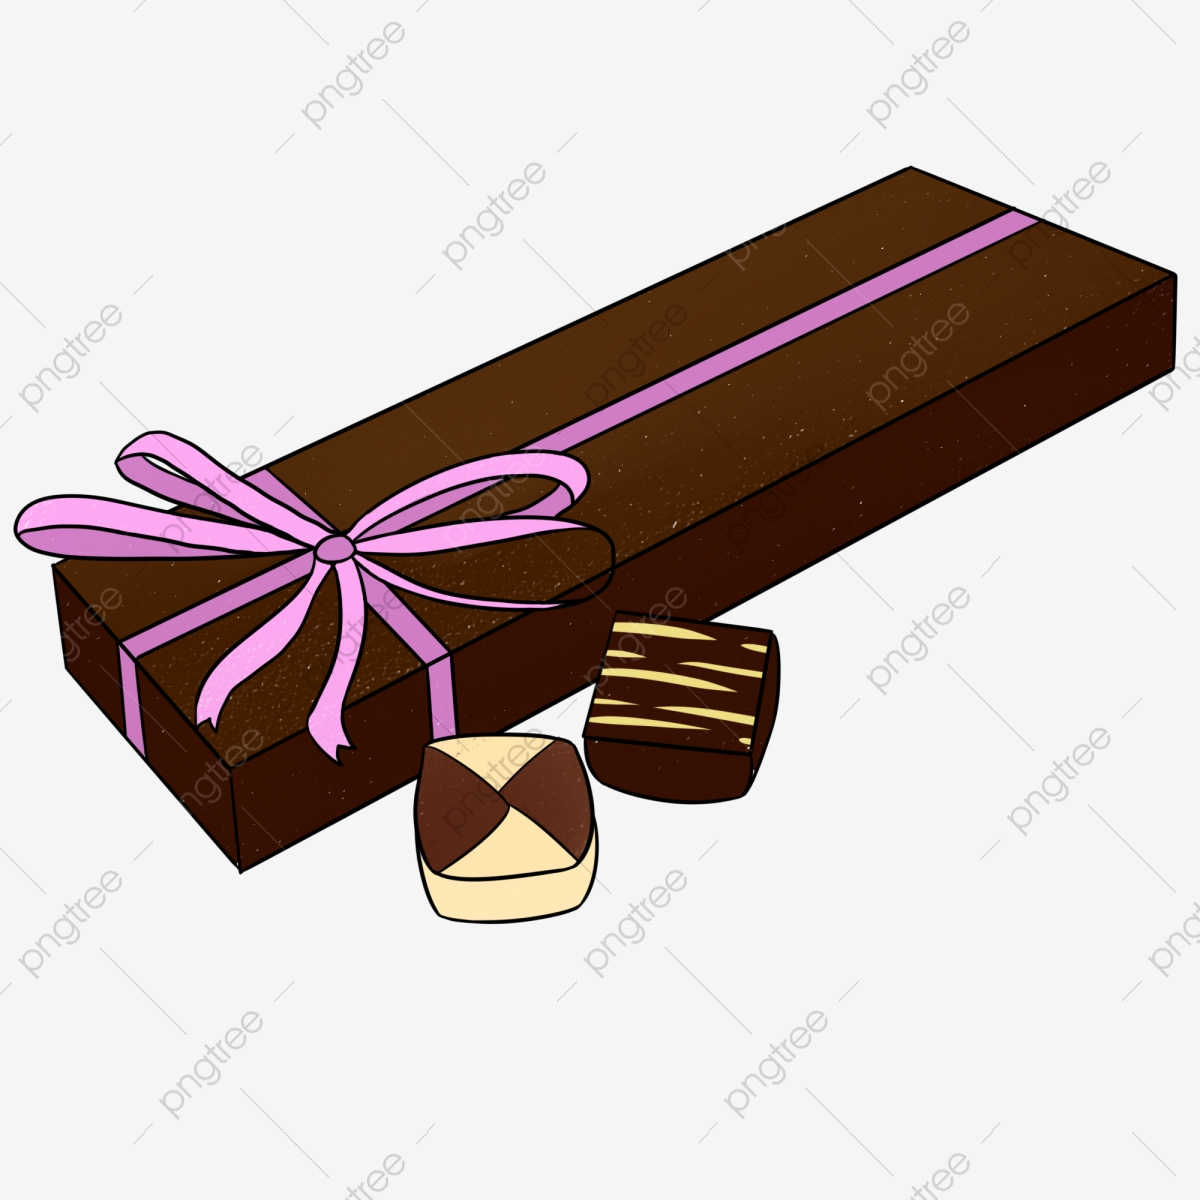 Chocolate clipart dark chocolate, Chocolate dark chocolate Transparent FREE  for download on WebStockReview 2020